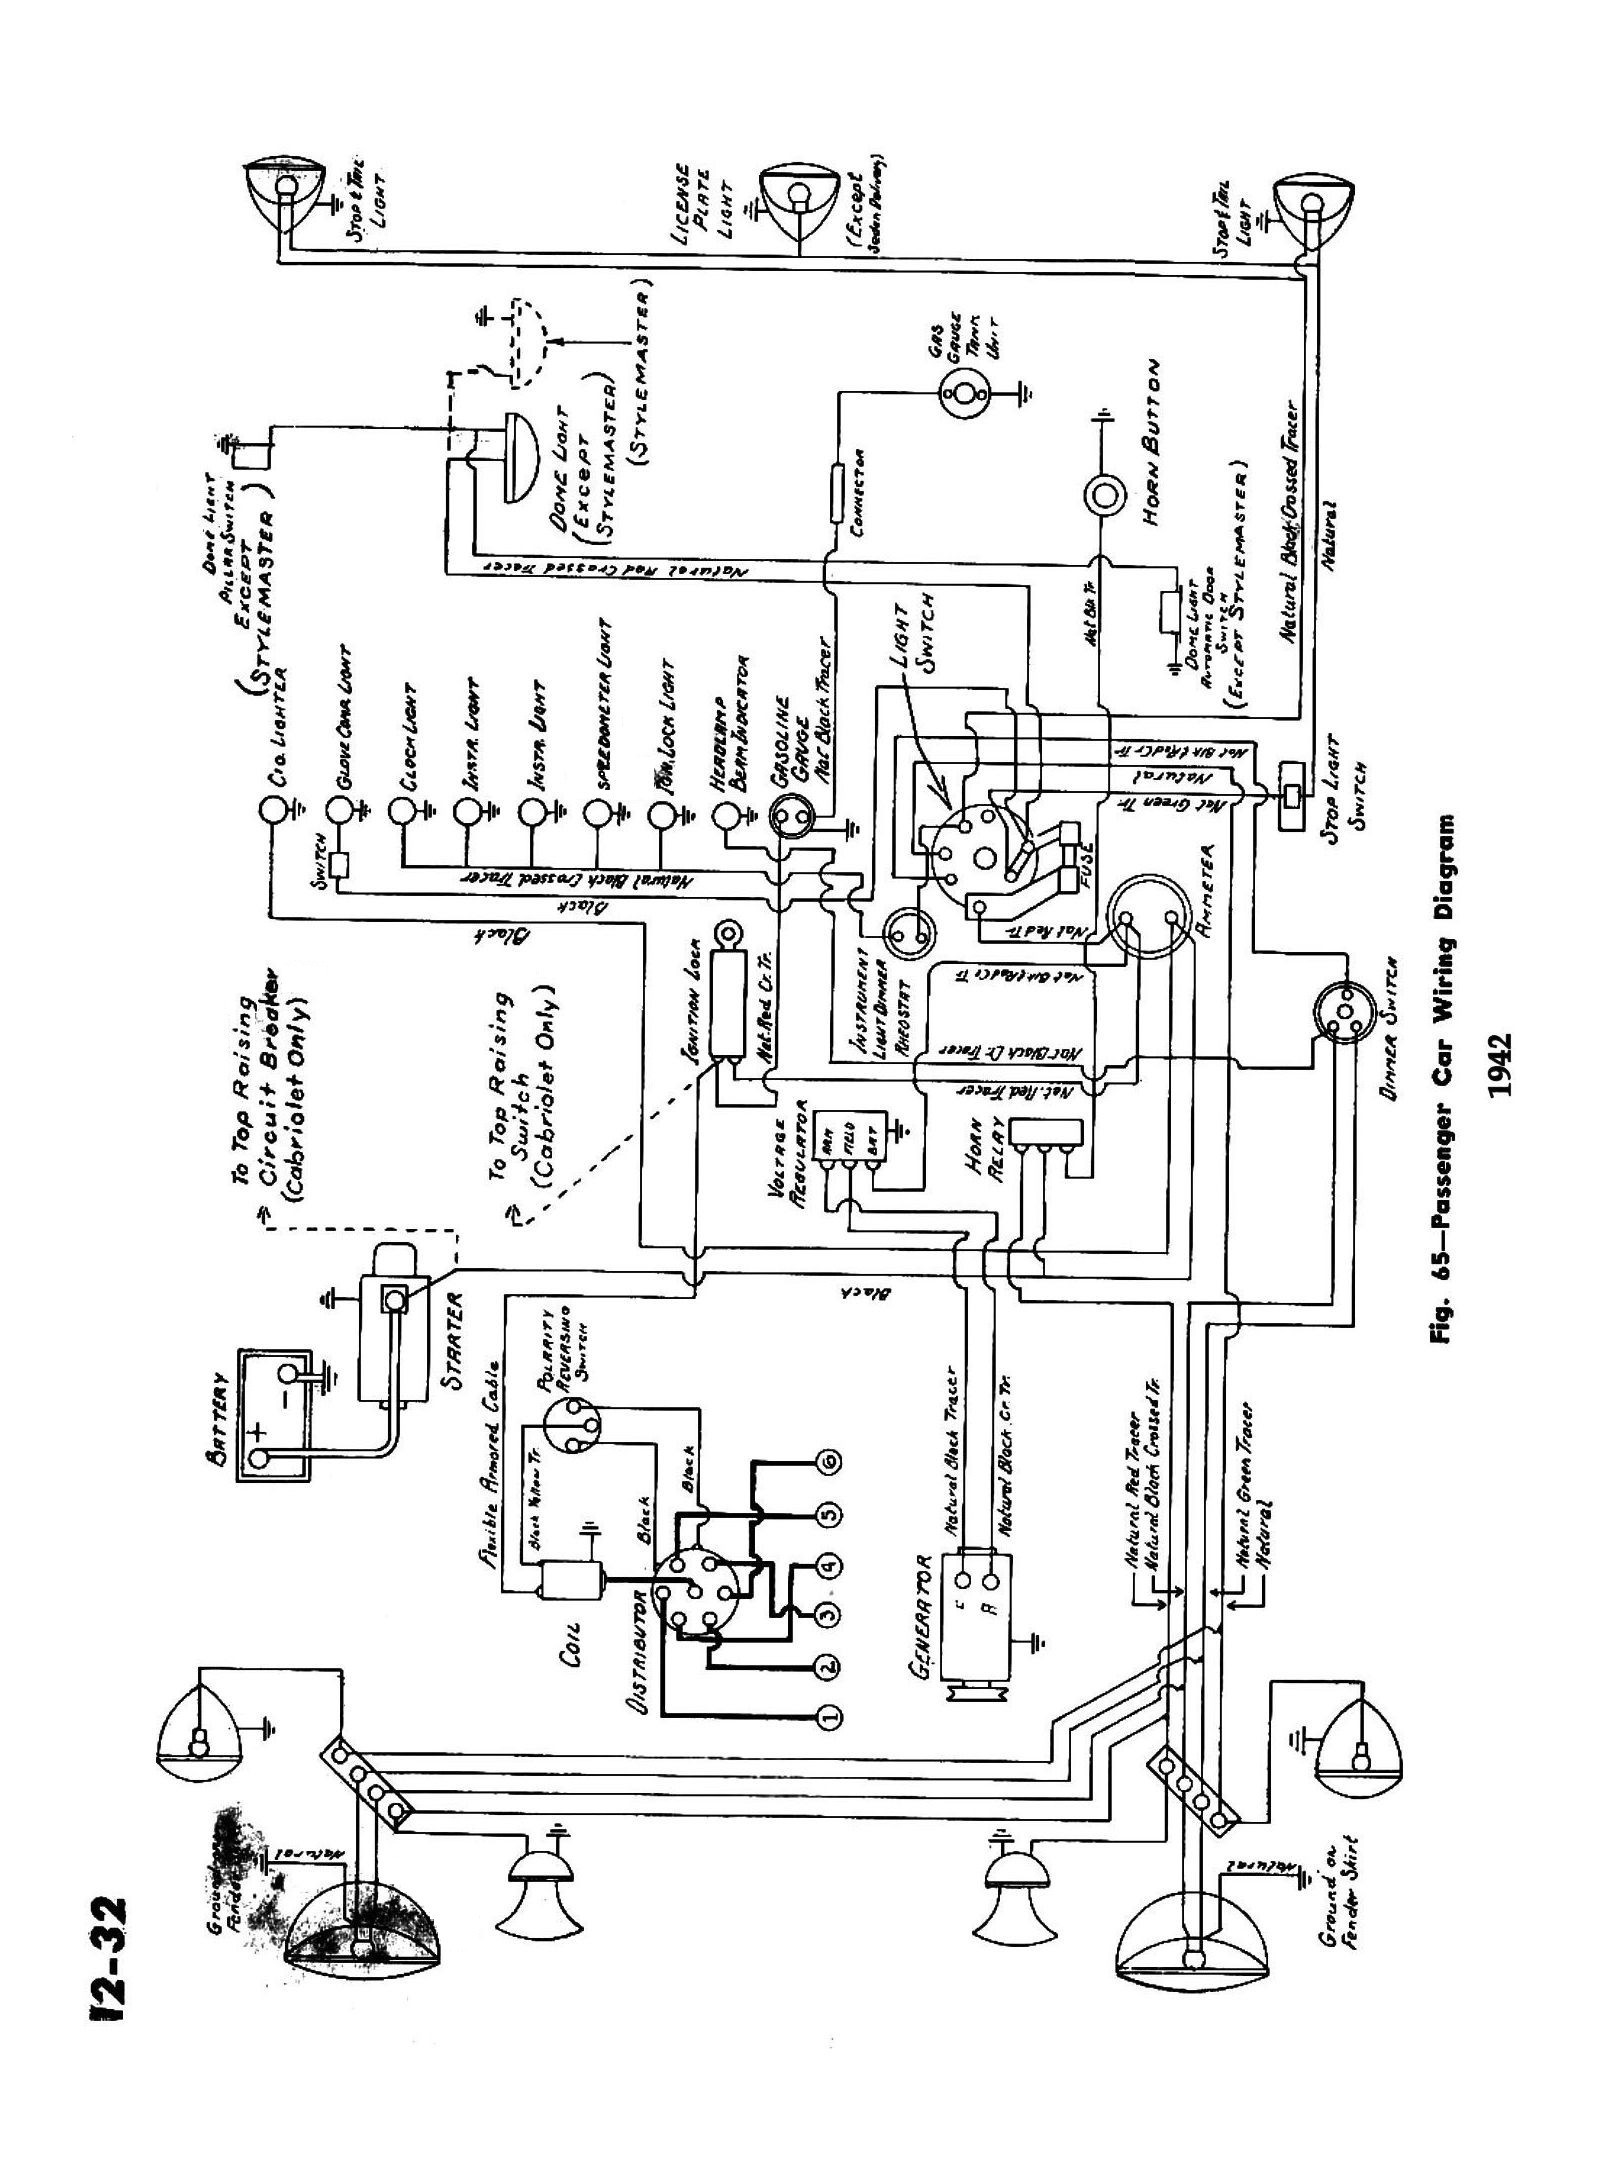 Wiring Diagram For Car Starter Best Chevy Wiring Diagrams